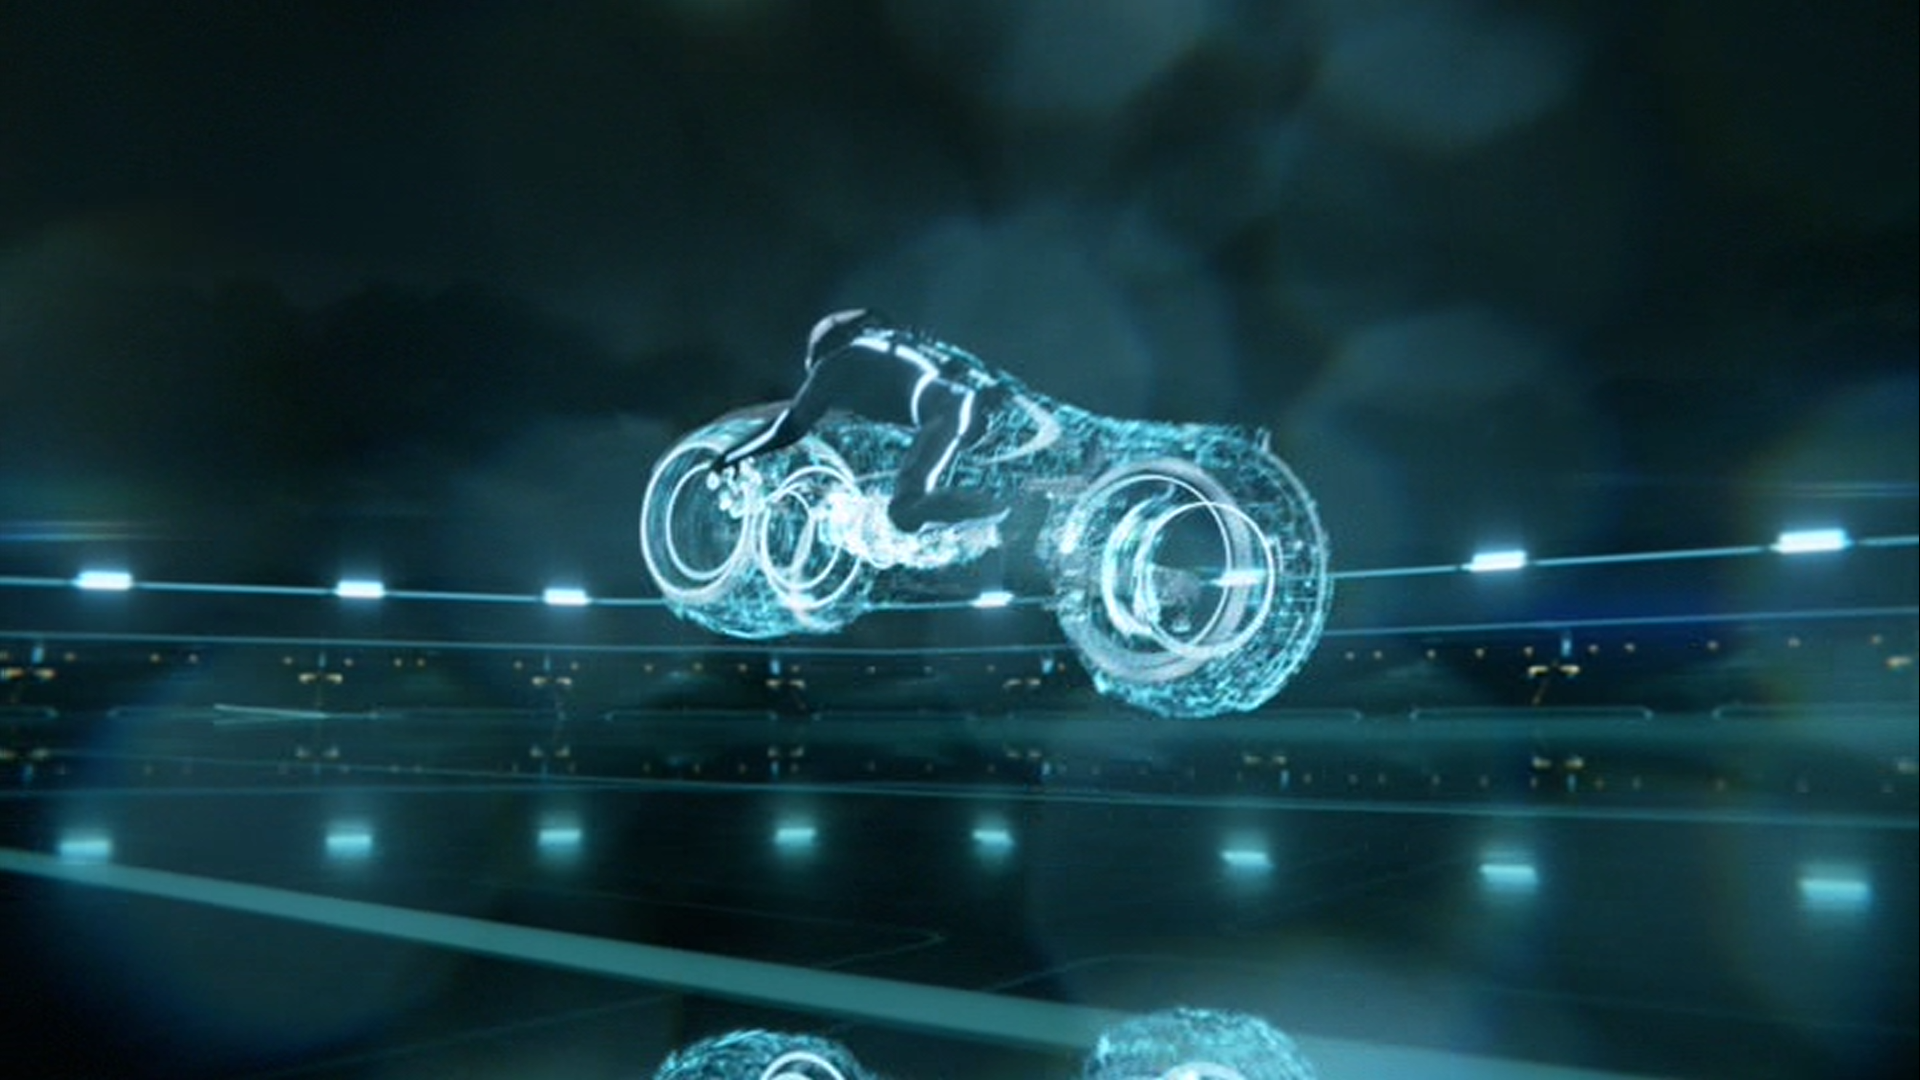 Tron Legacy Is Very Much In Keeping With The Original Film But Has Been Brough Bang Up To Date Cutting Edge CGI